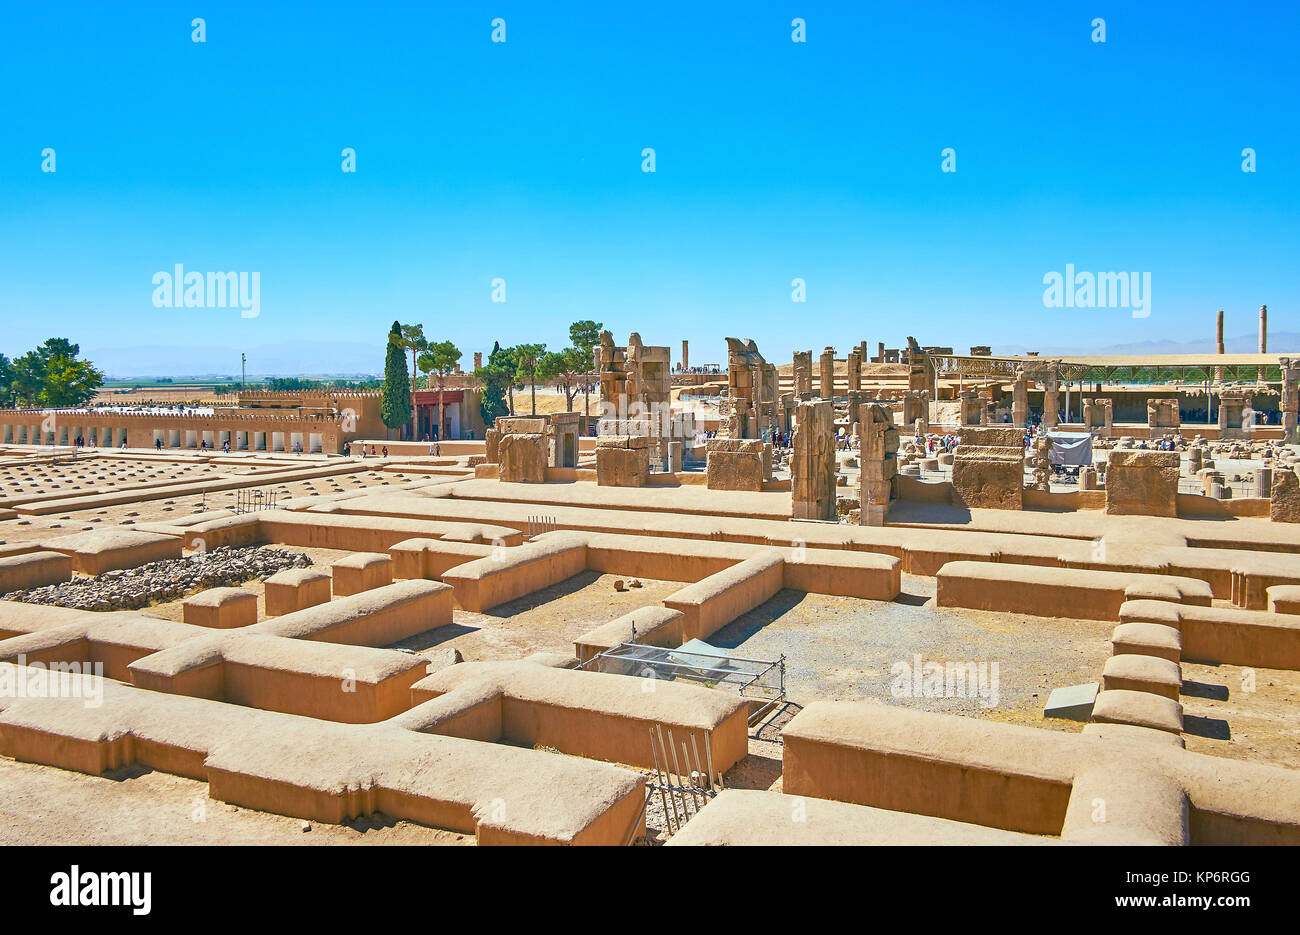 The building of Persepolis Treasury located behind the buildings' foundations and is neighboring with ruined - Stock Image